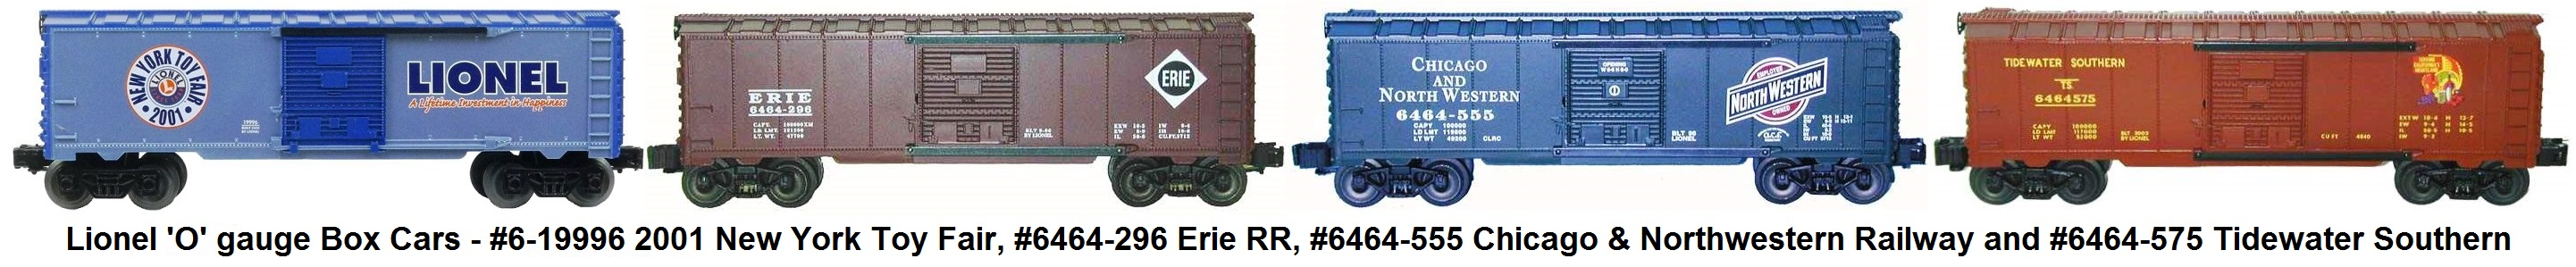 Lionel 'O' gauge #6-19996 2001 New York Toy Fair, #6464-296 Erie, #6464-555 Chicago & Northwestern and #6464-575 Tidewater Southern Box Cars